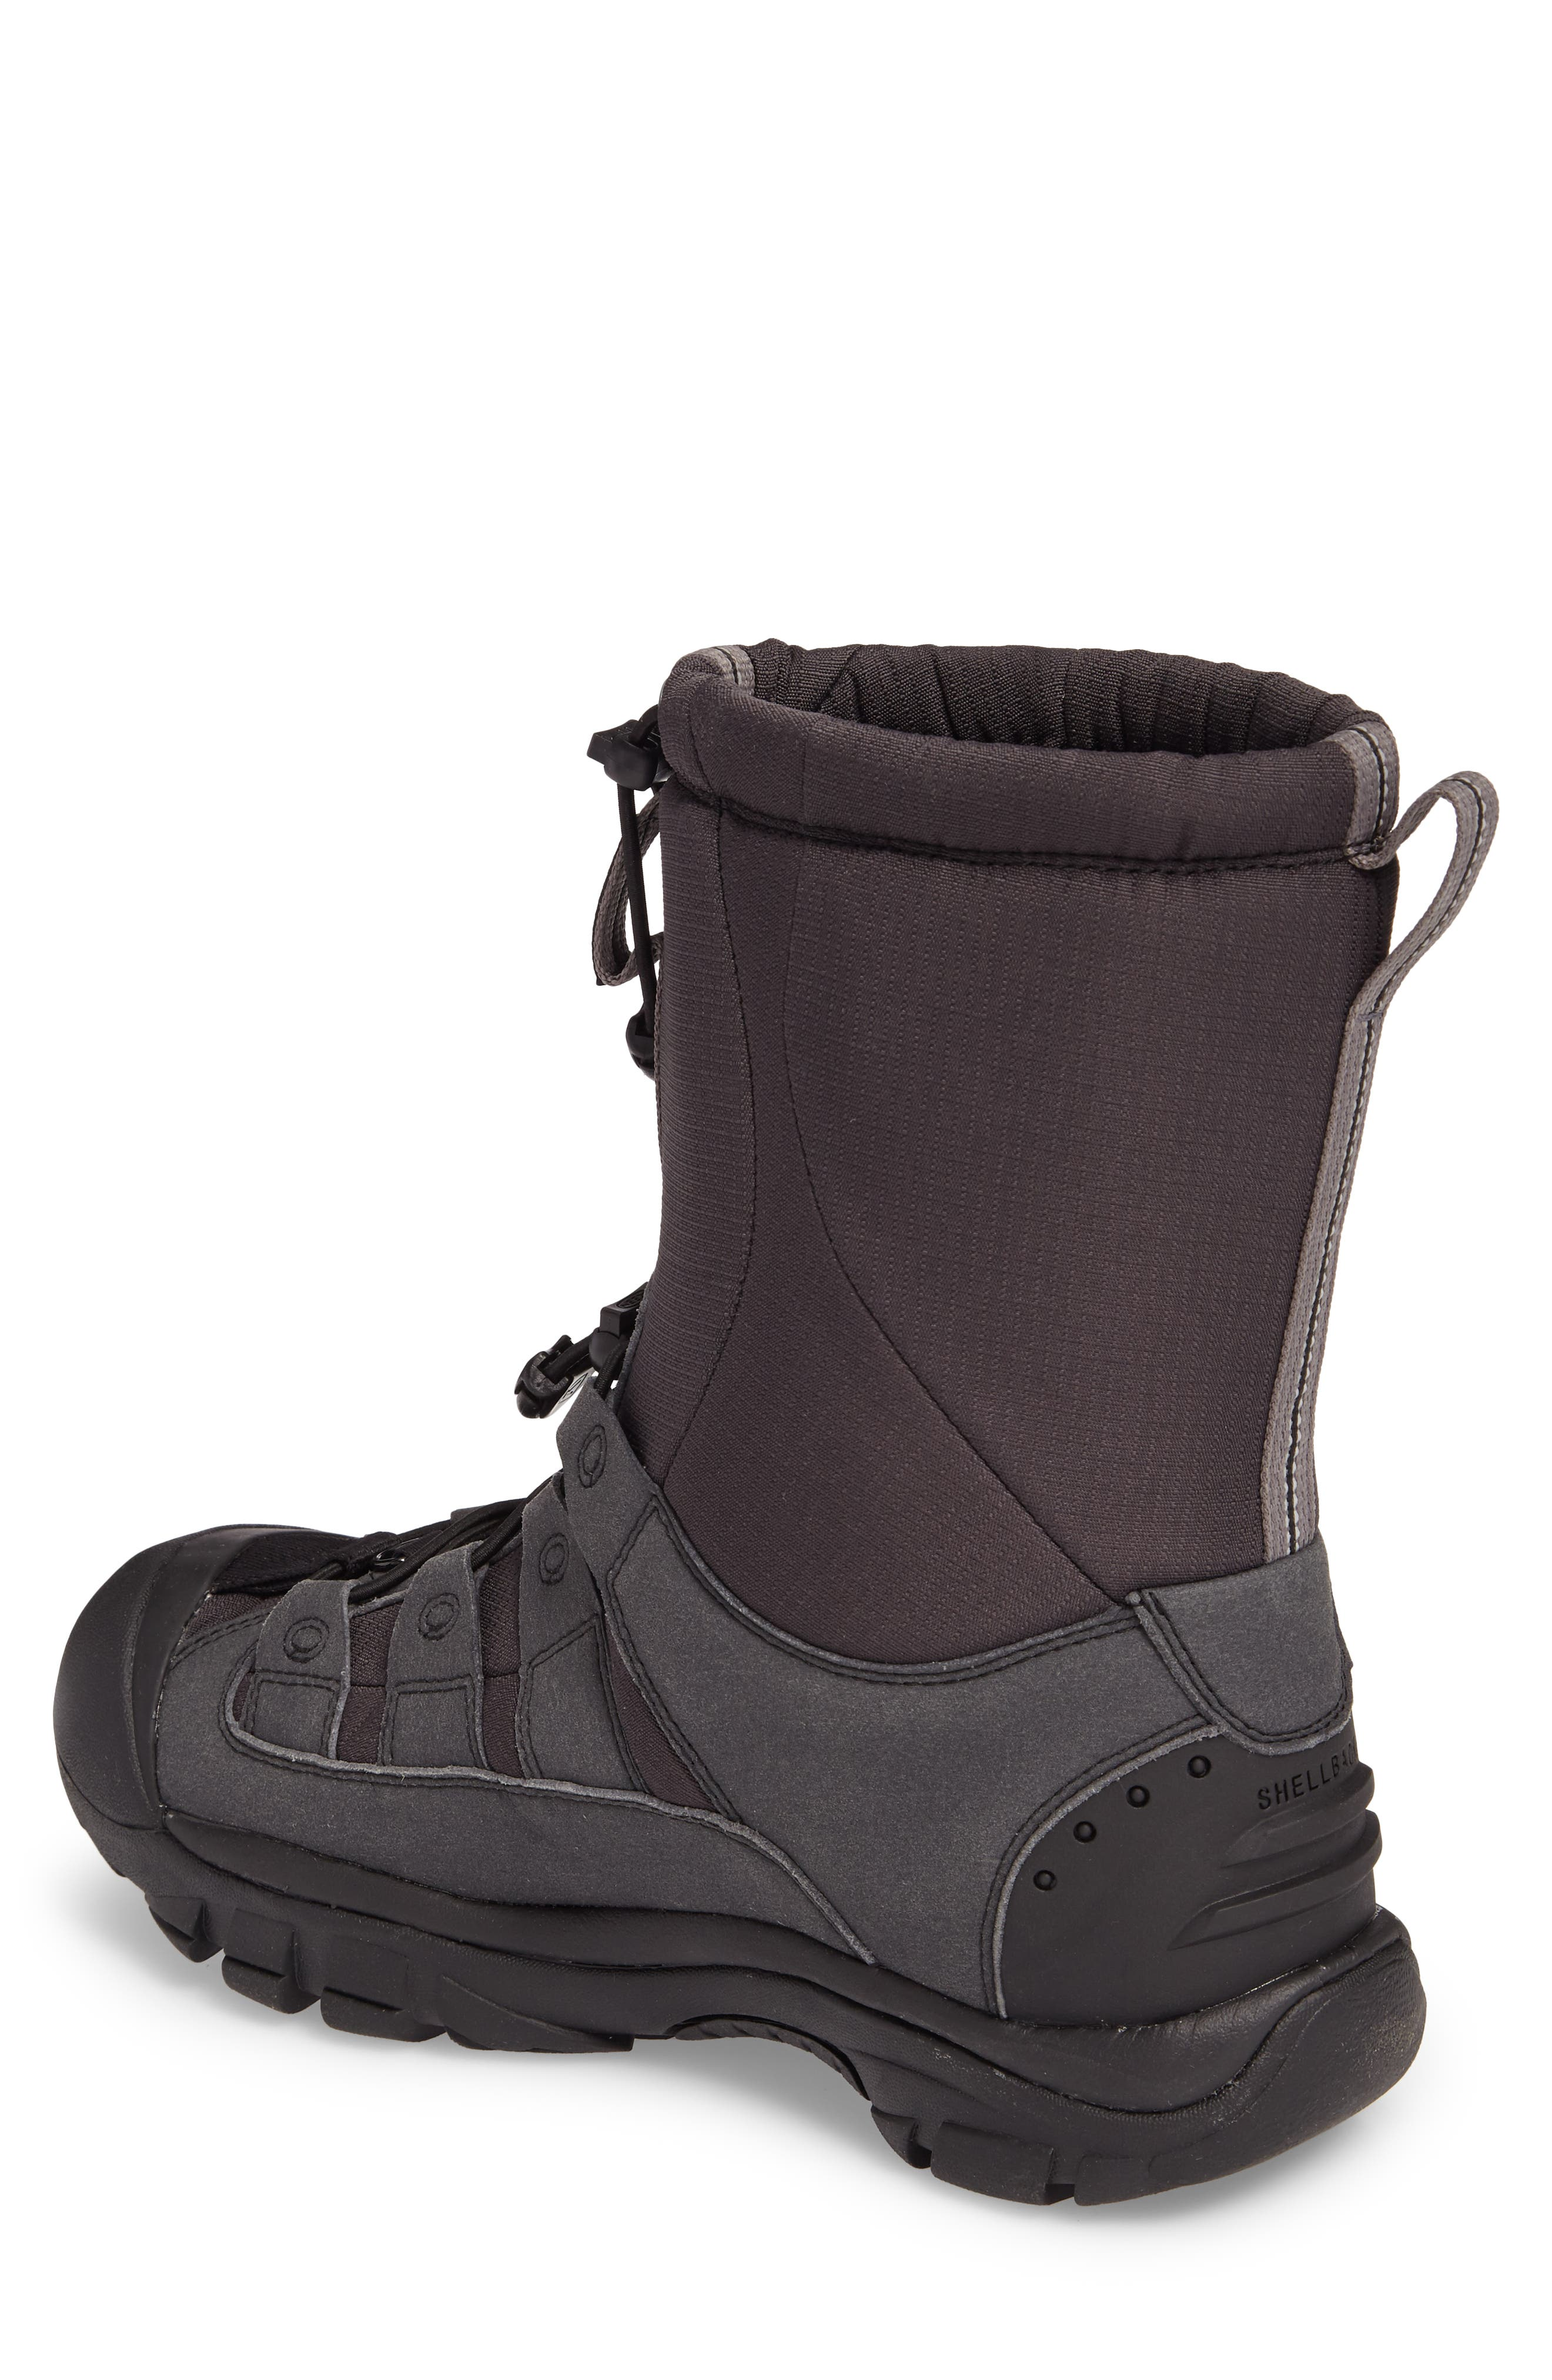 Winterport II Waterproof Insulated Snow Boot,                             Alternate thumbnail 2, color,                             001